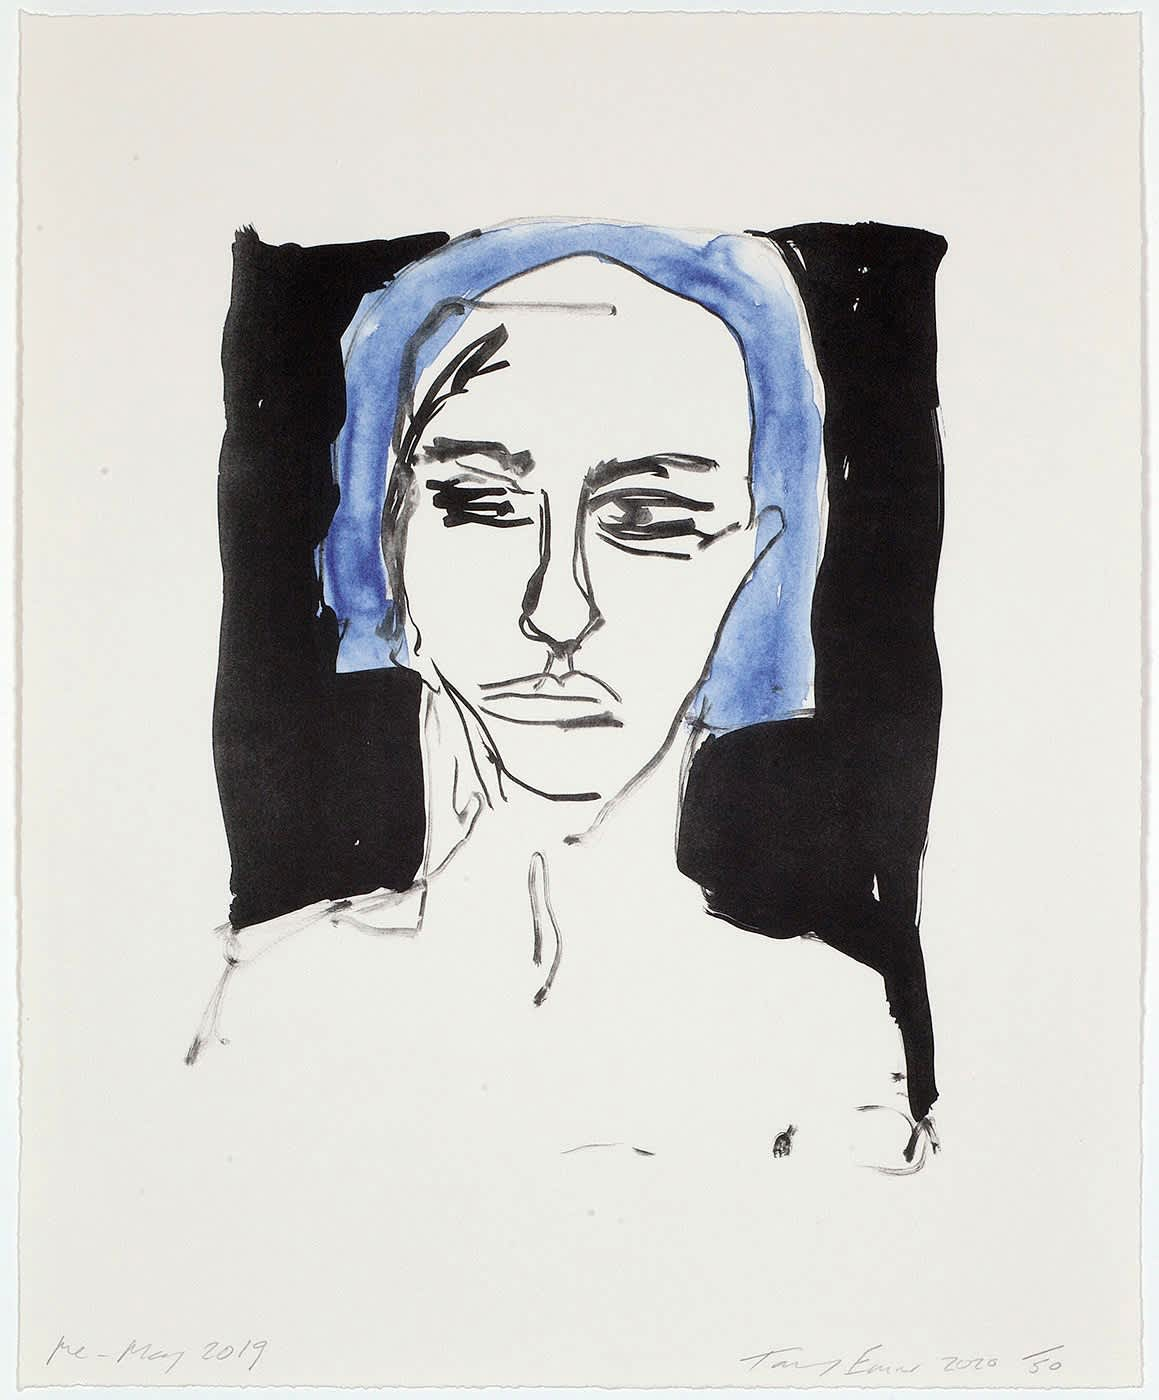 Tracey Emin Me - May Two colour lithograph on Somerset velvet warm white paper